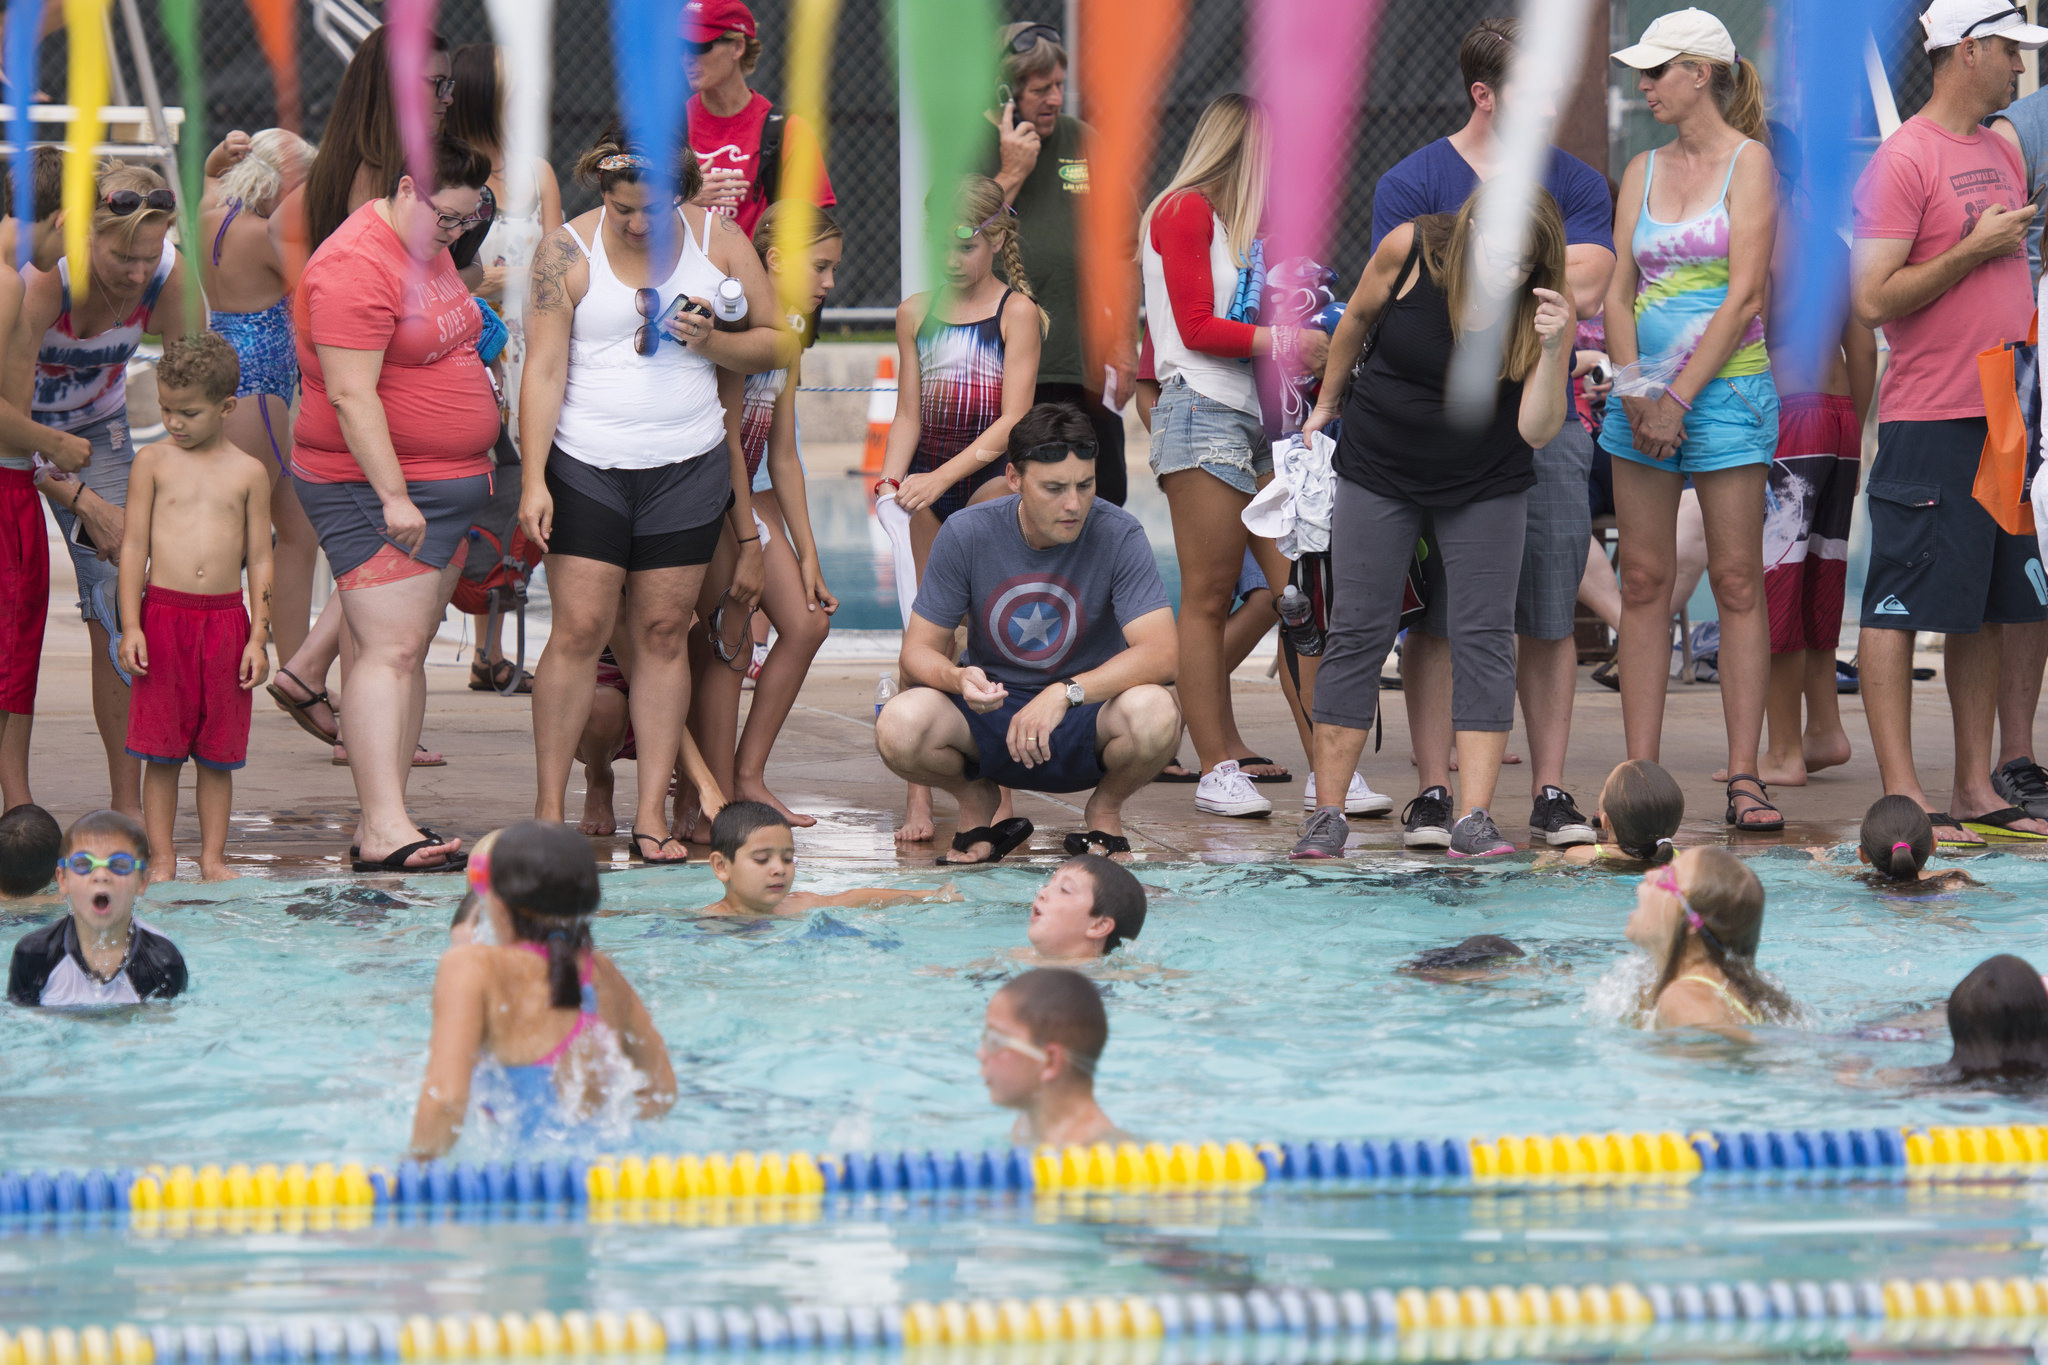 The 9 years old and under league participates in the coin dive at Broadbent Park Pool during the 67th Annual Boulder City Damboree Celebration in Boulder City, Saturday, July 4, 2015.(JASON OGULNIK/BOULDER CITY REVIEW)